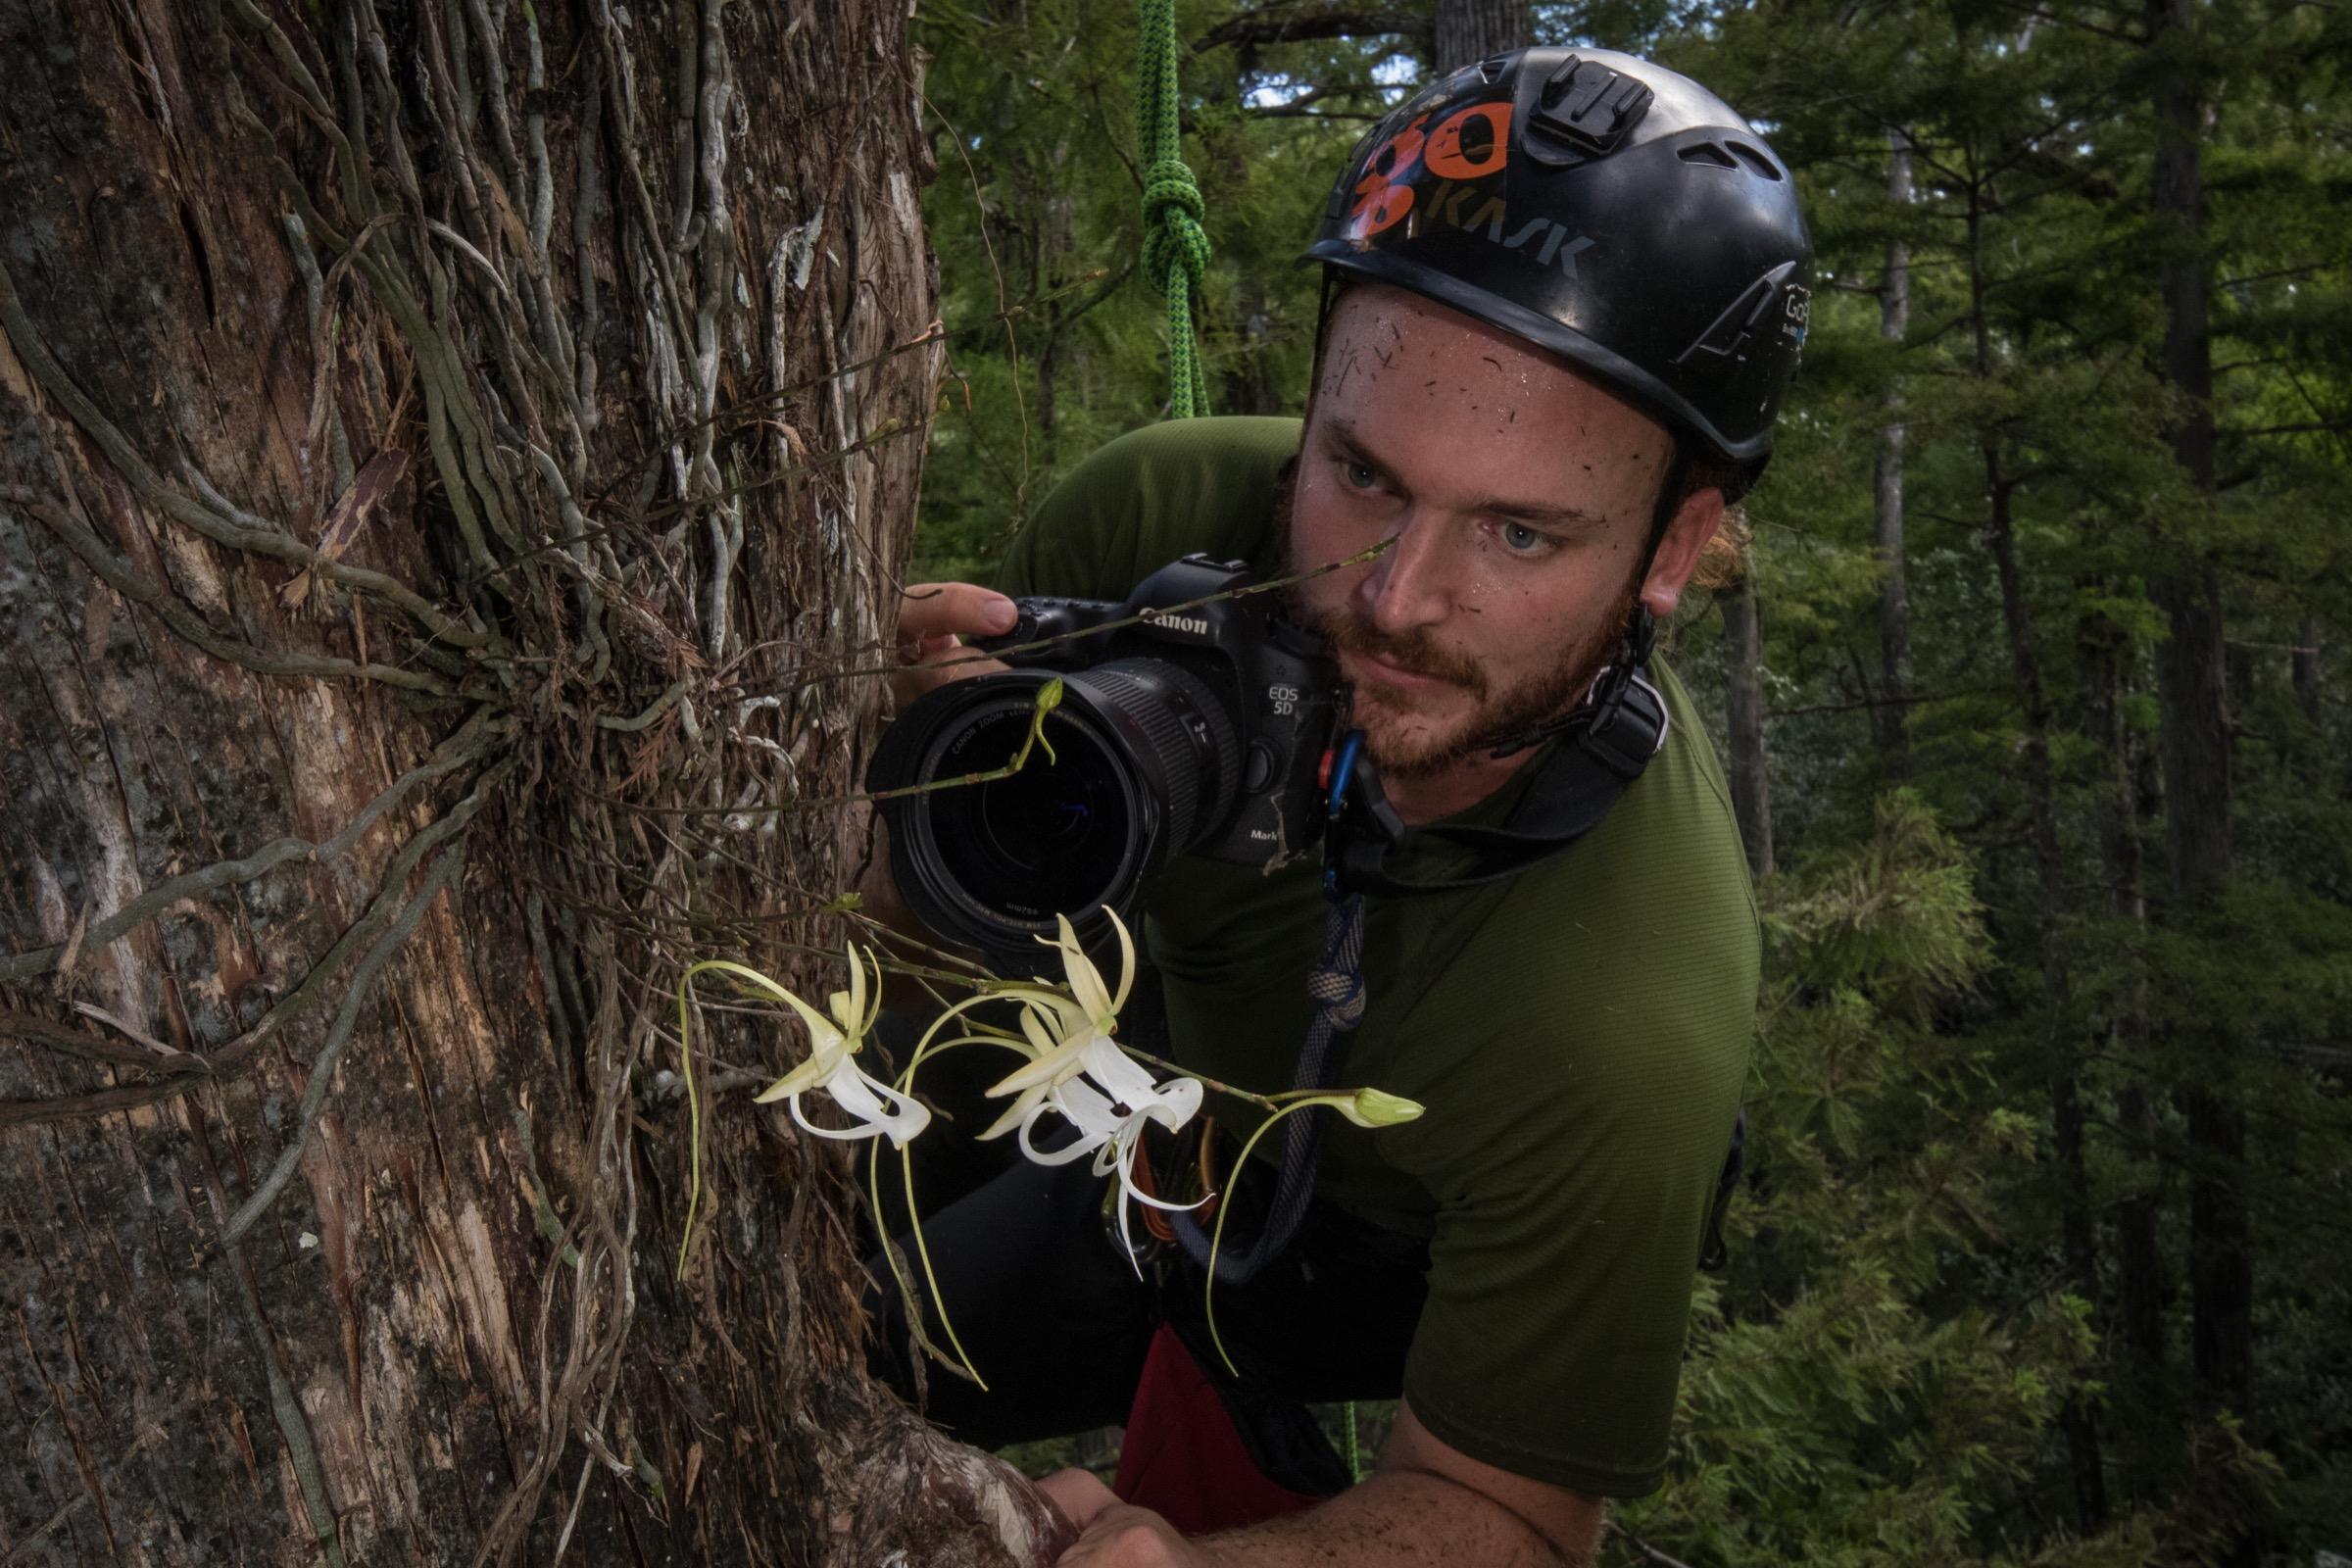 Ecologist Peter Houlihan hangs from a climbing harness as he inspects a ghost orchid 50 feet up in a bald cypress tree. Photograph by Mac Stone